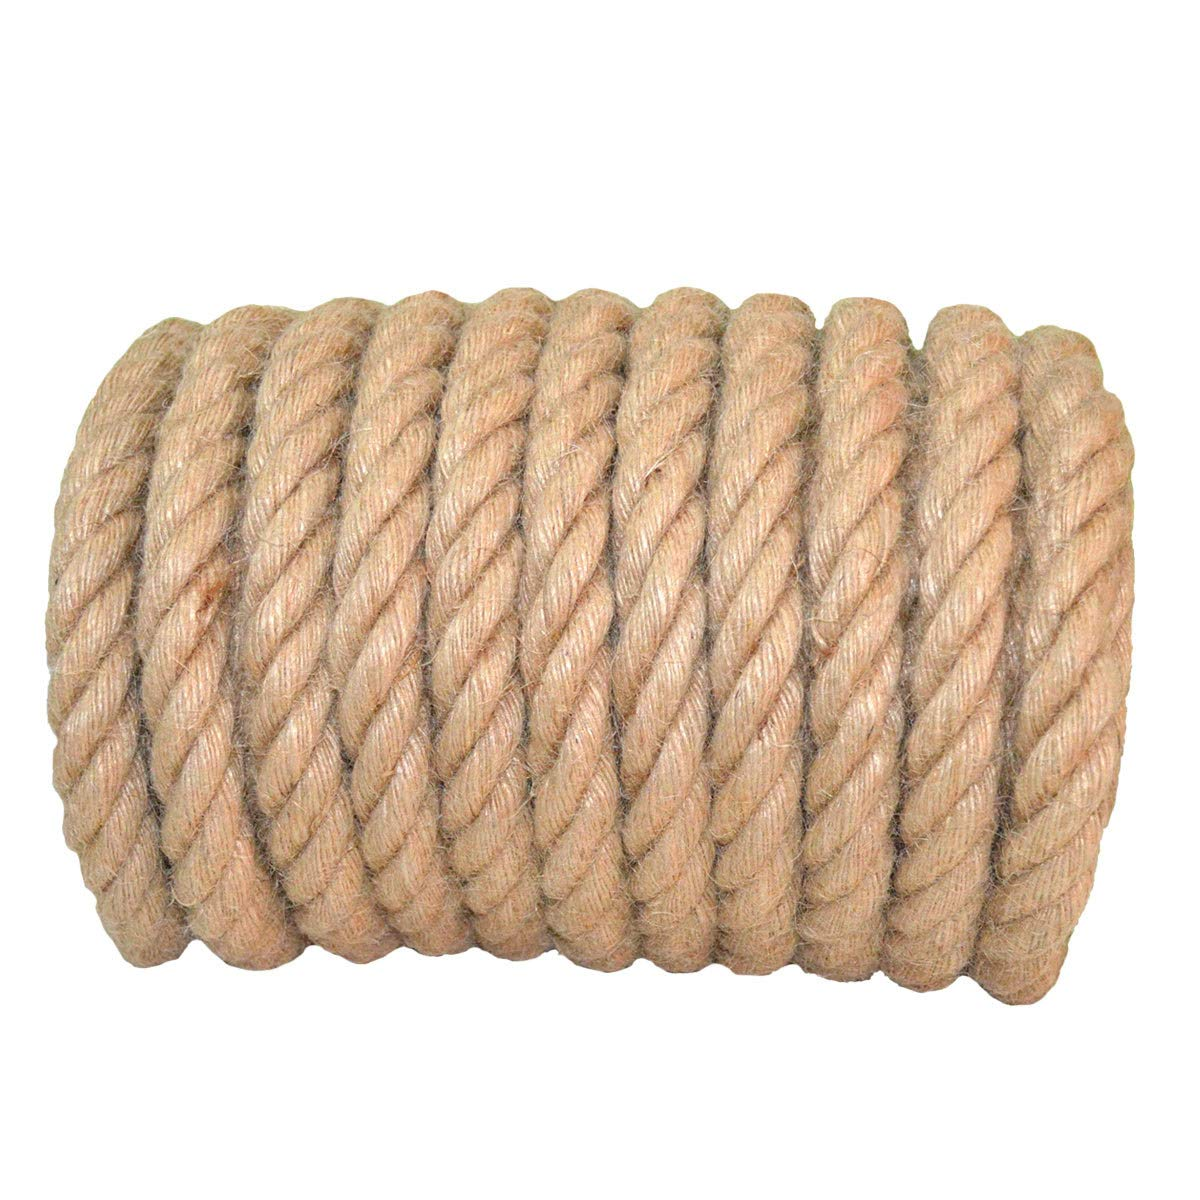 Tree Hanging Swing YuzeNet Climbing 100/% Natural Strong Twisted Manila Rope Jute Rope 1 in x 100 ft Landscaping Nautical Thick Hemp Rope for Crafts